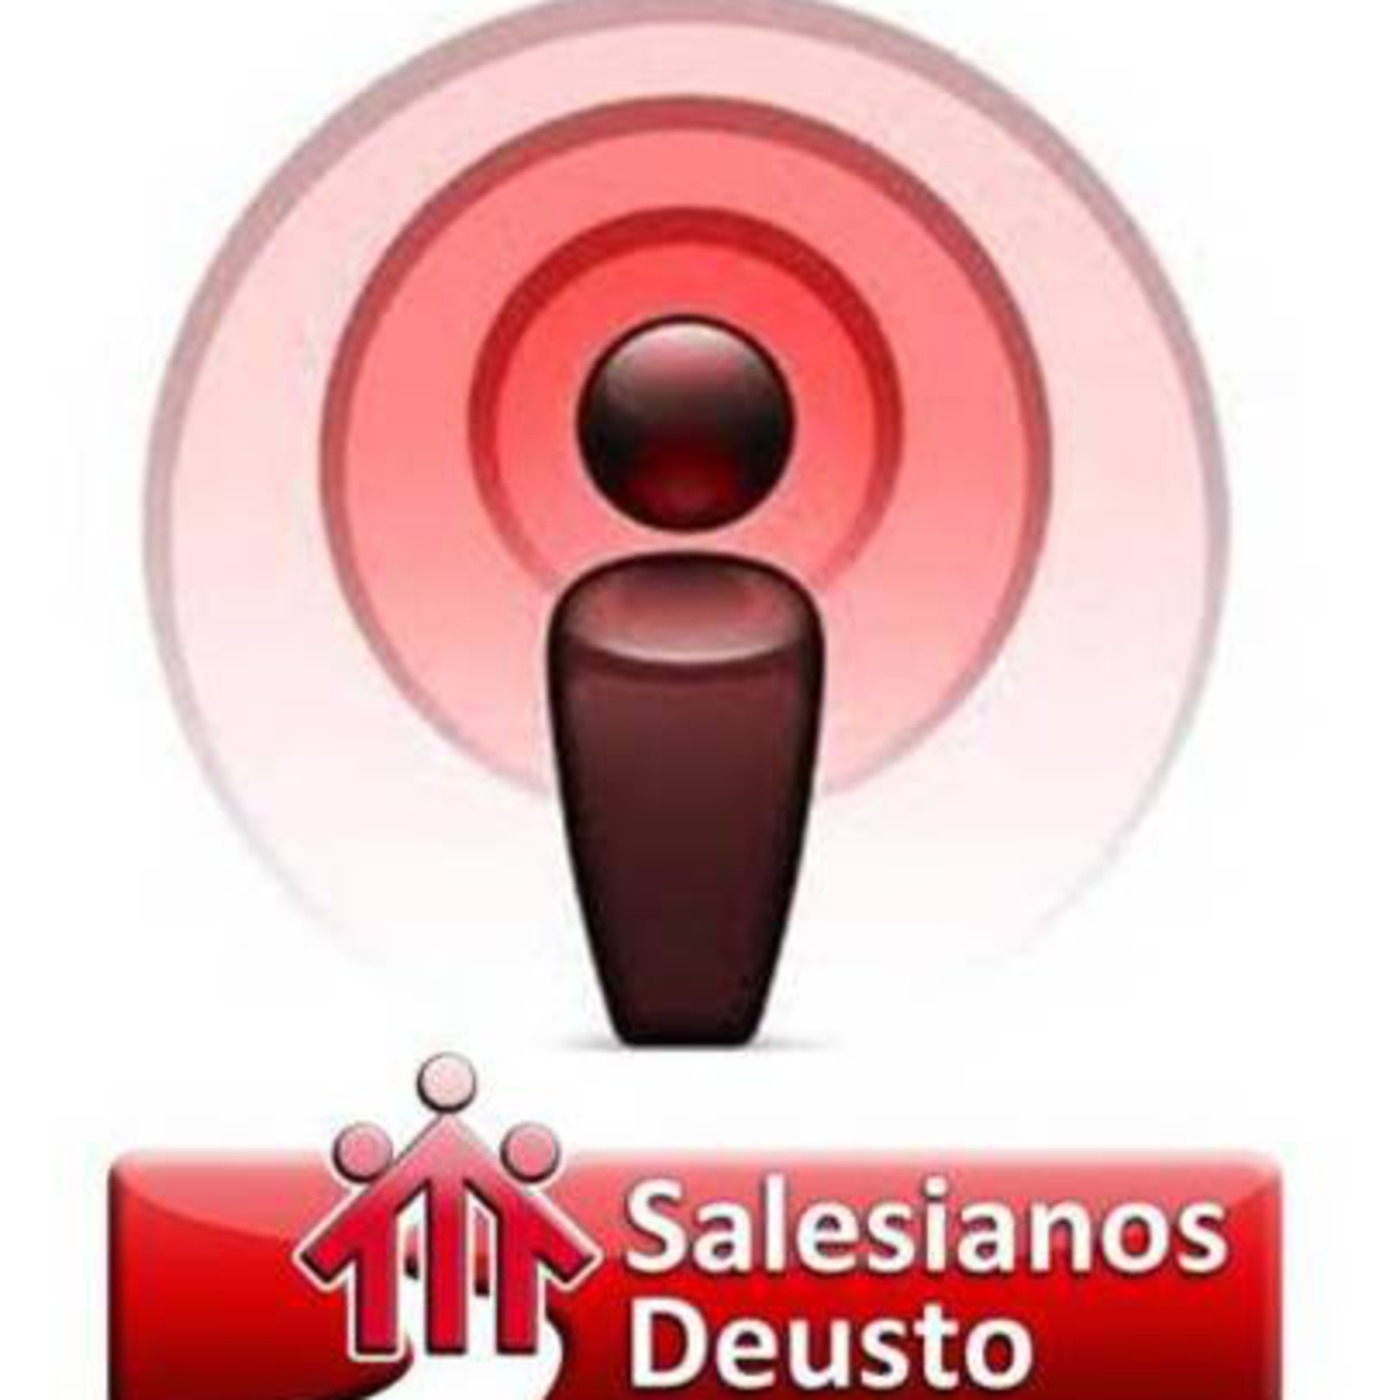 El podcast de Salesianos Deusto